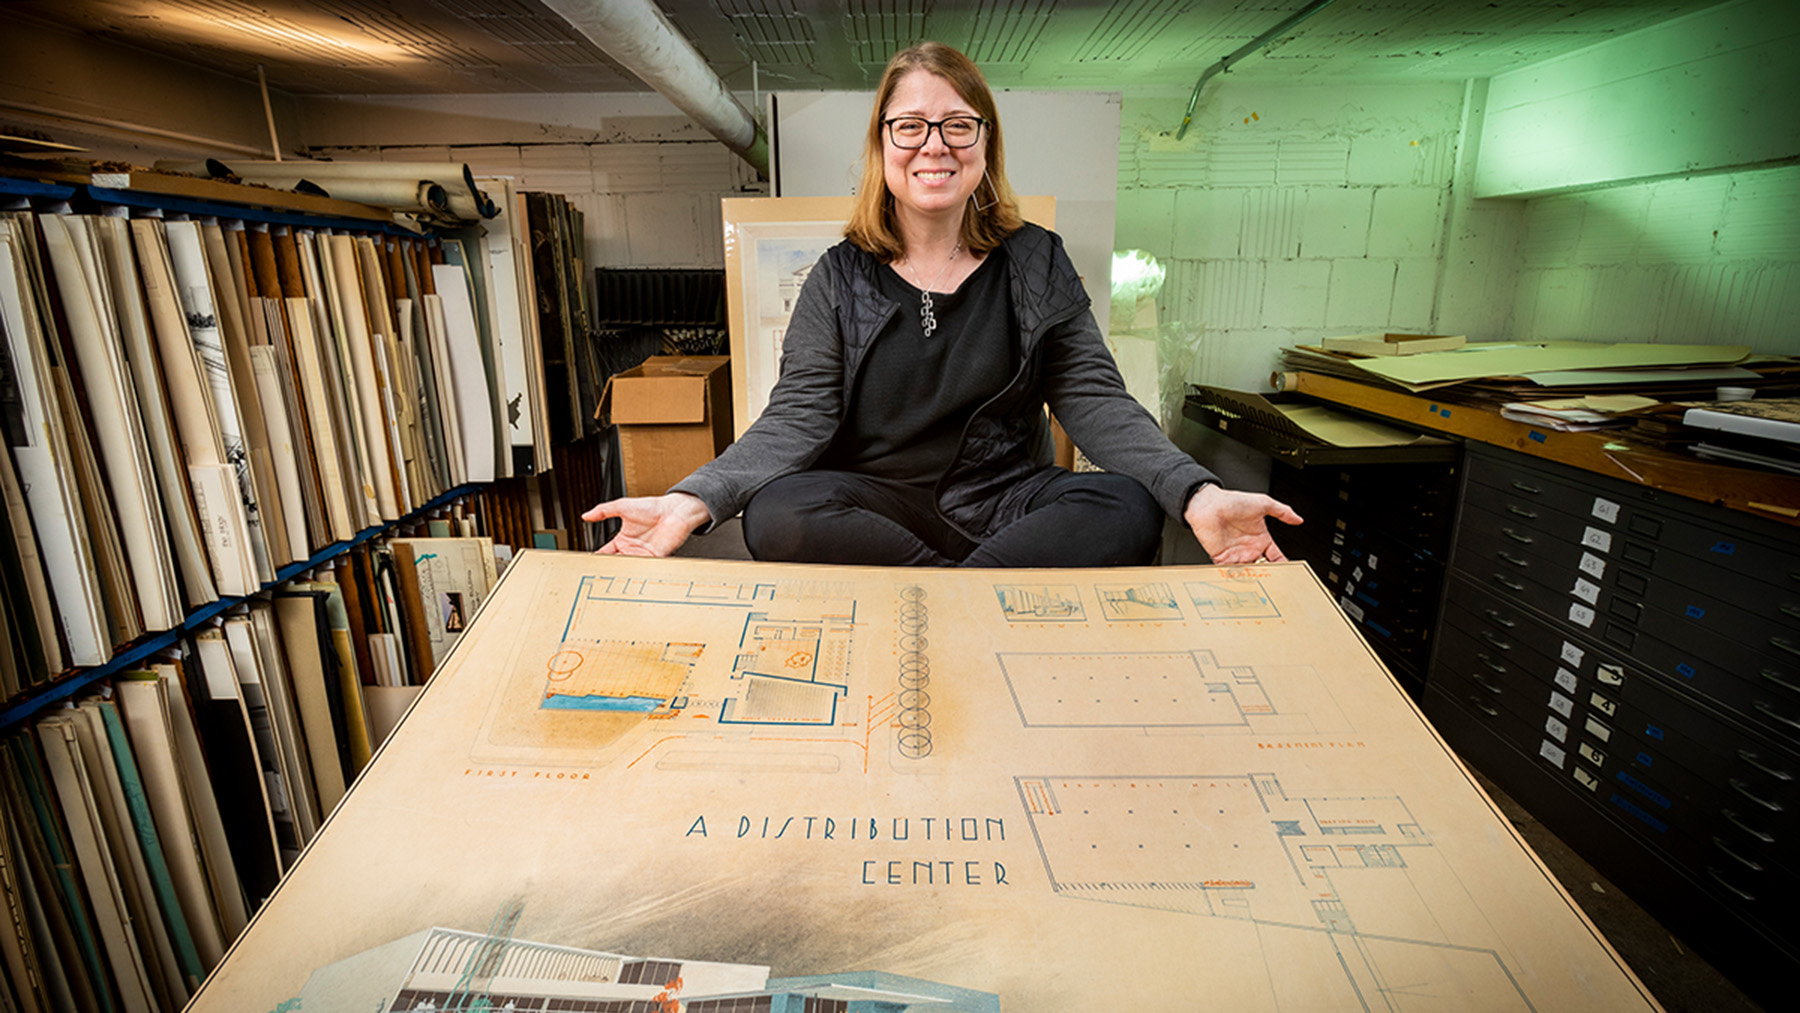 Architecture professor Marci Uihlein is leading a project to preserve and catalog a collection of University of Illinois architecture student drawings. The drawings are student design projects from 1890 to 1985, including this 1947 design for a distribution center.  Photo by Fred Zwicky